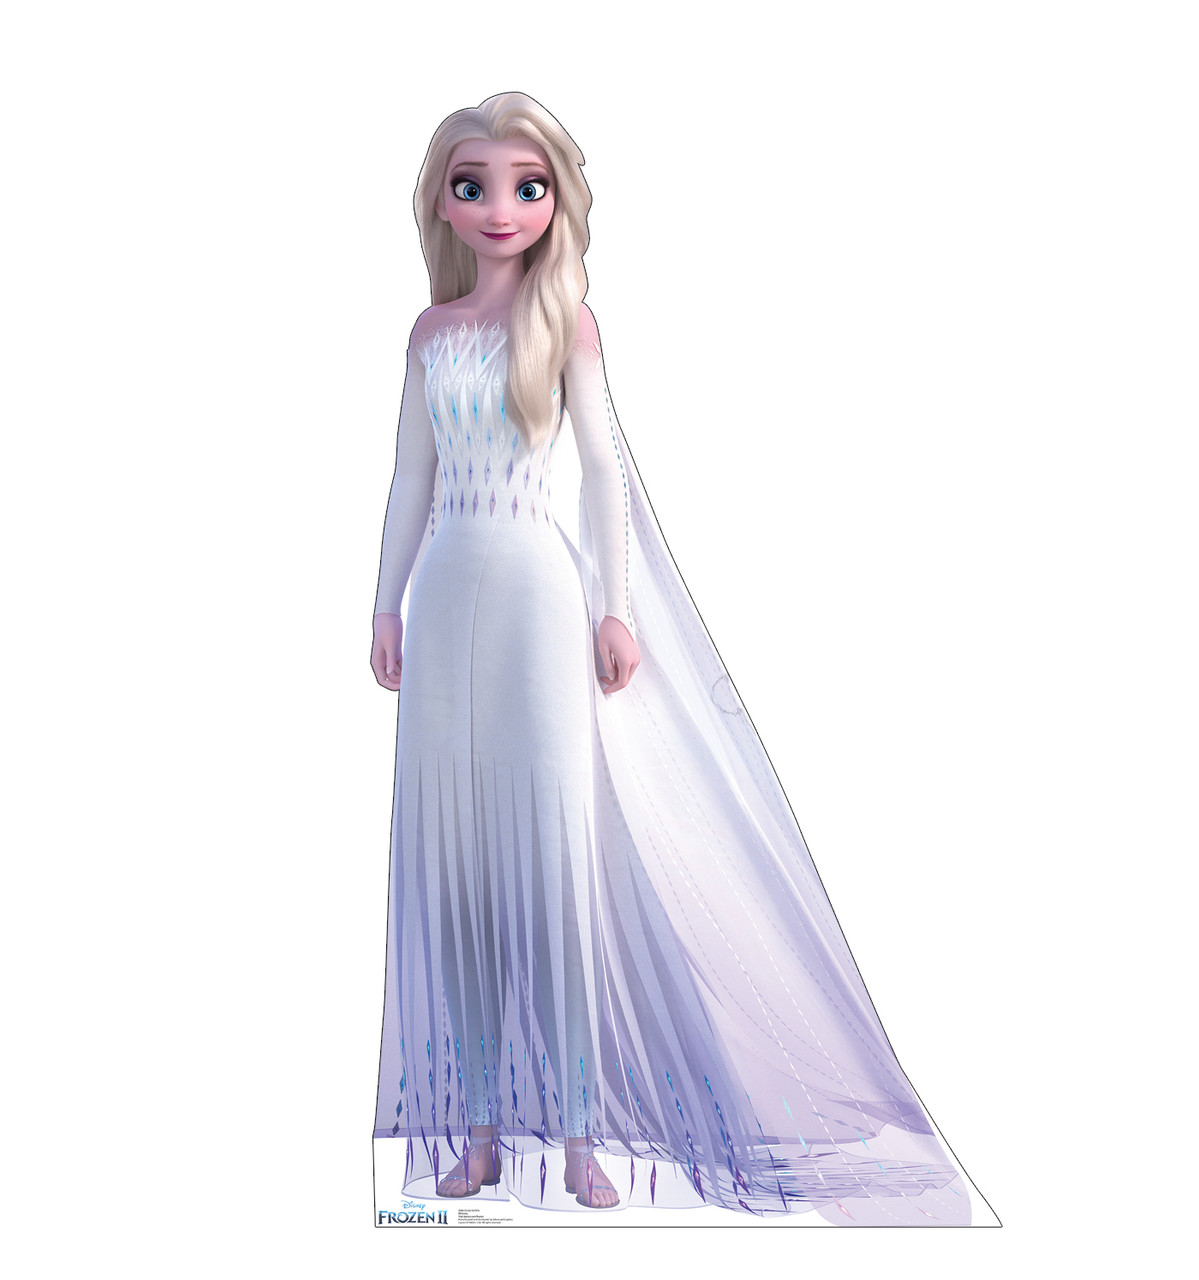 Life-size cardboard standee of Elsa Epilogue Gown from Disney's Frozen 2.